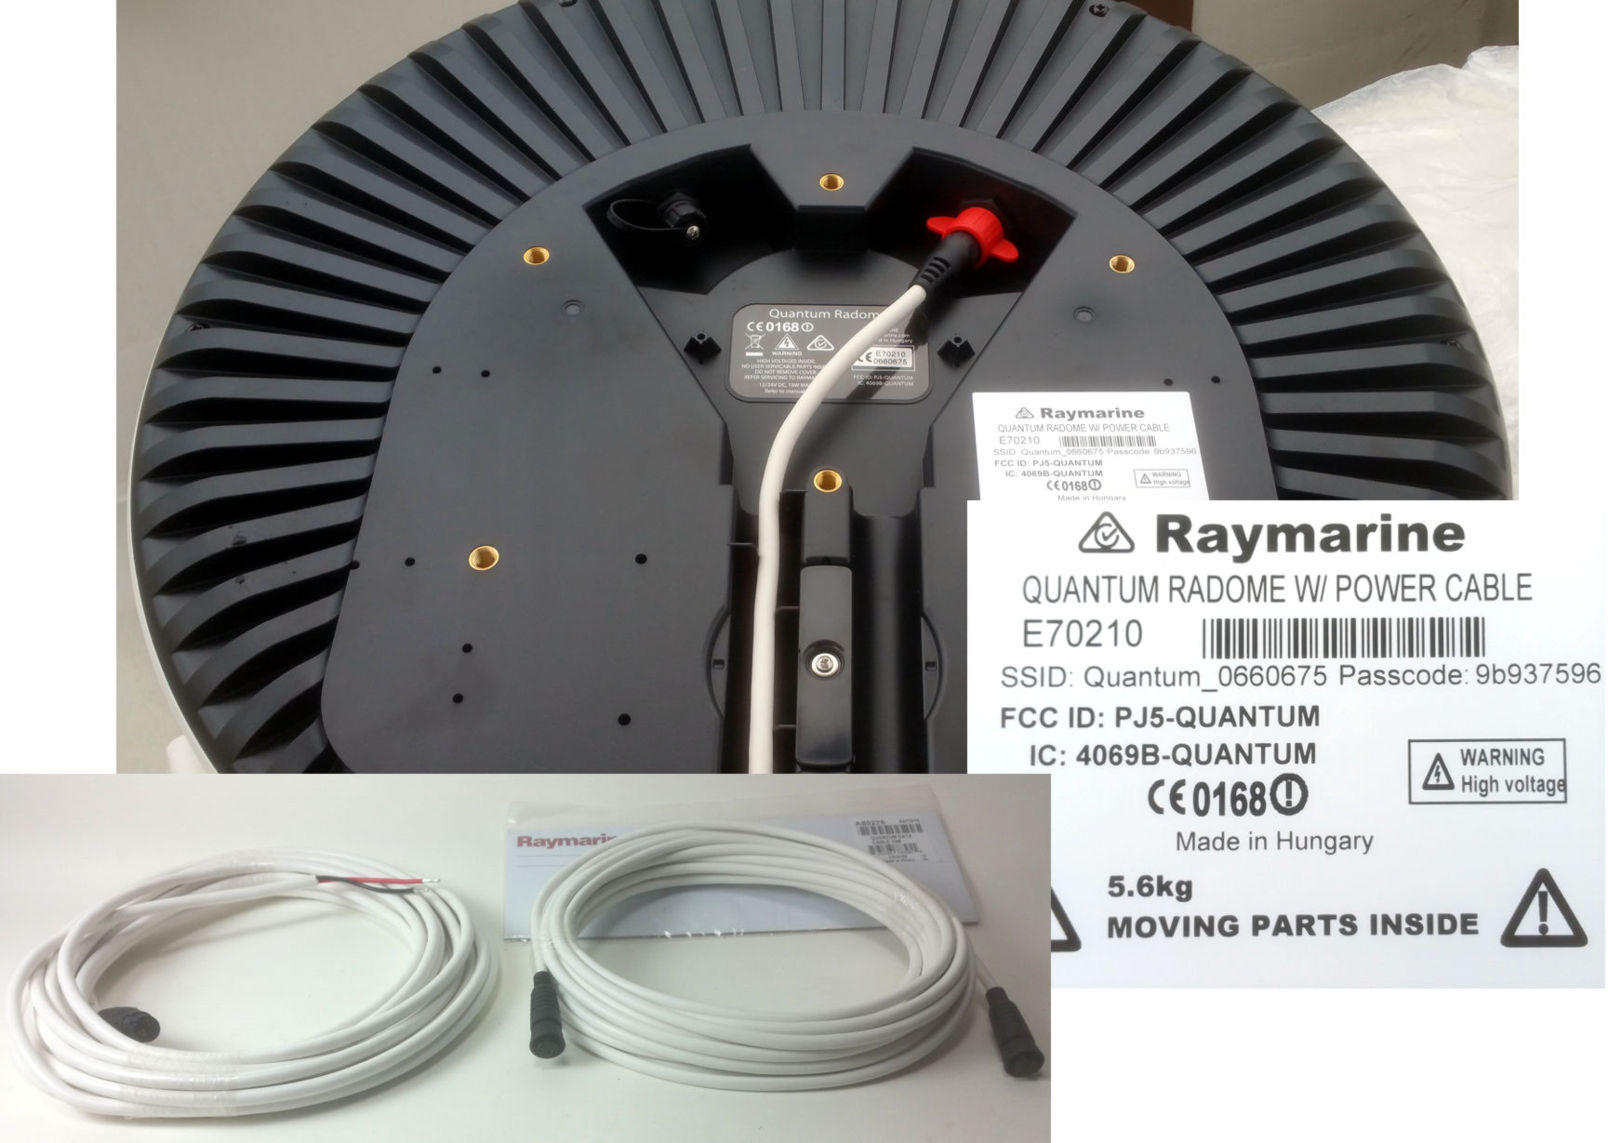 Raymarine_Quantum_radar_cabling_and_WiFi